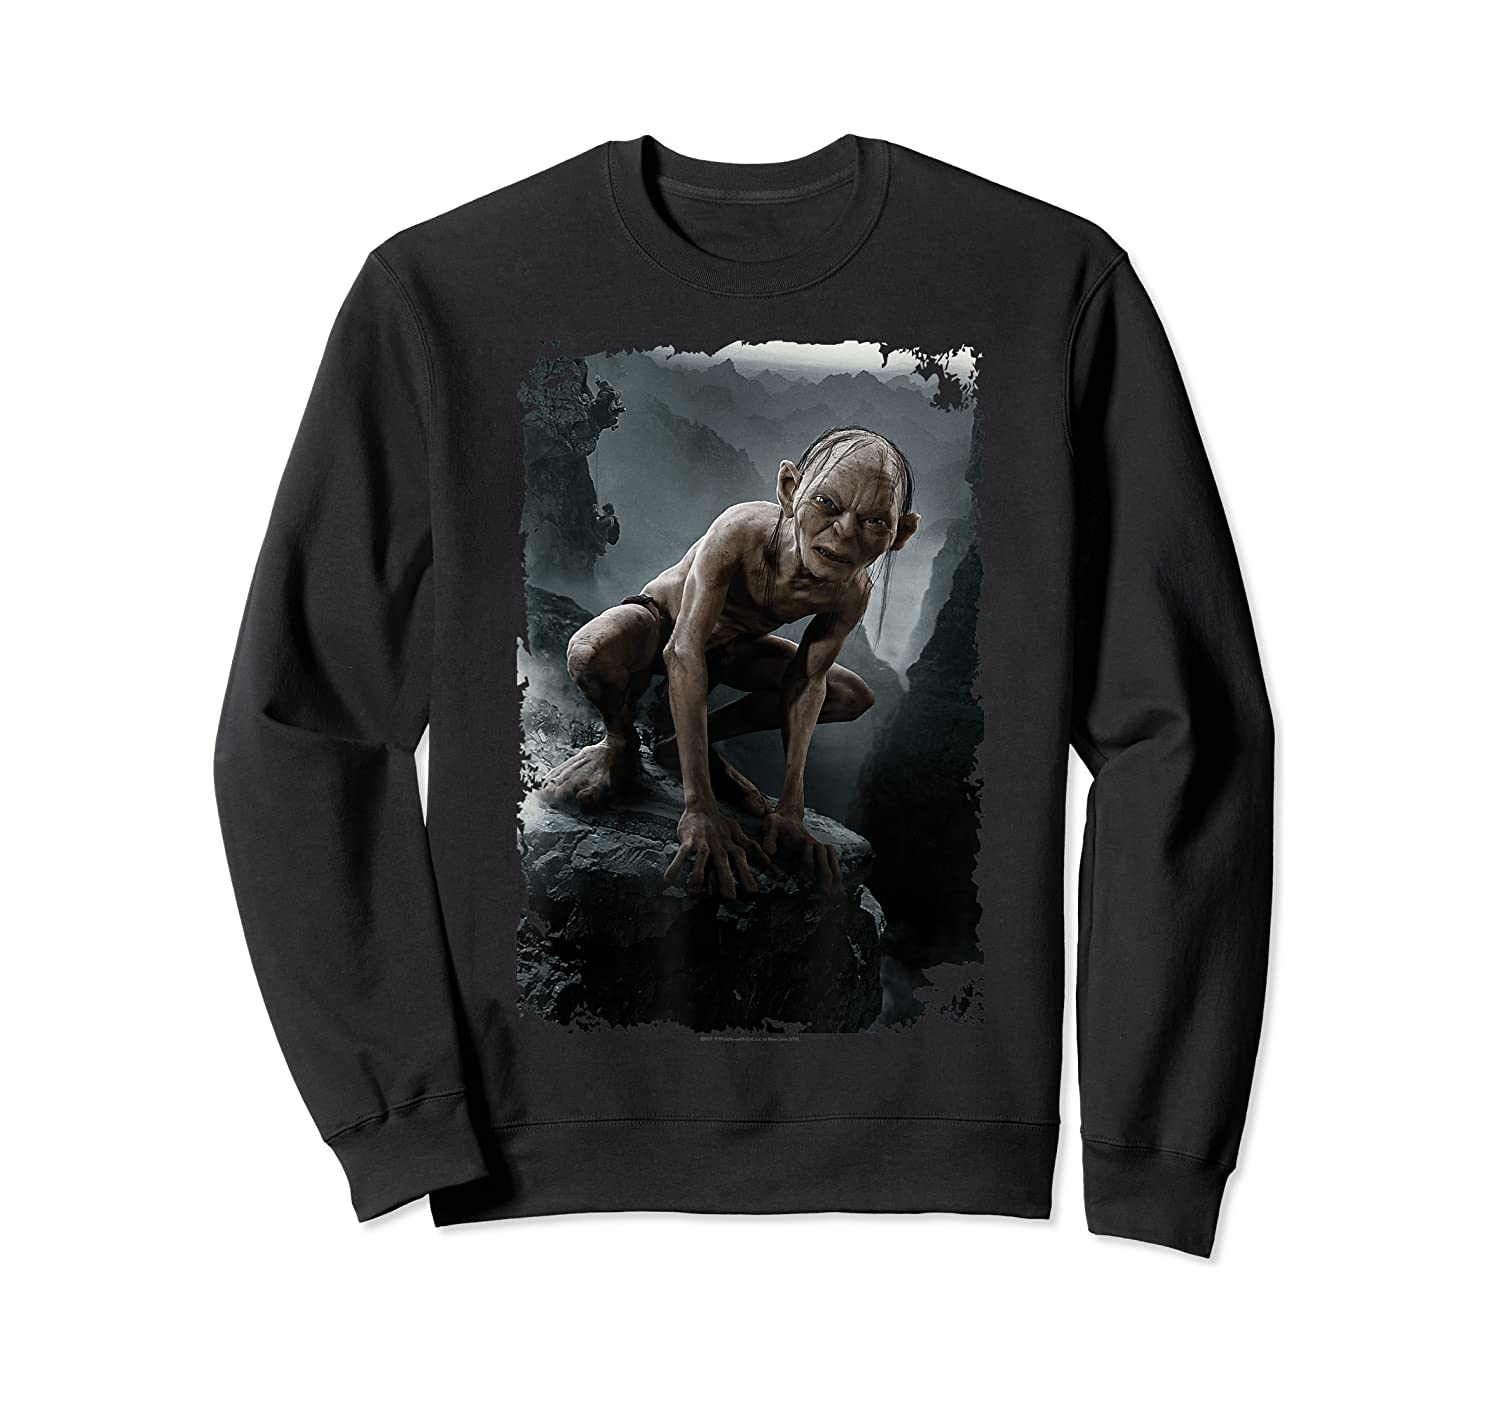 The Lord Of The Rings Gollum T-shirt Crewneck Sweater